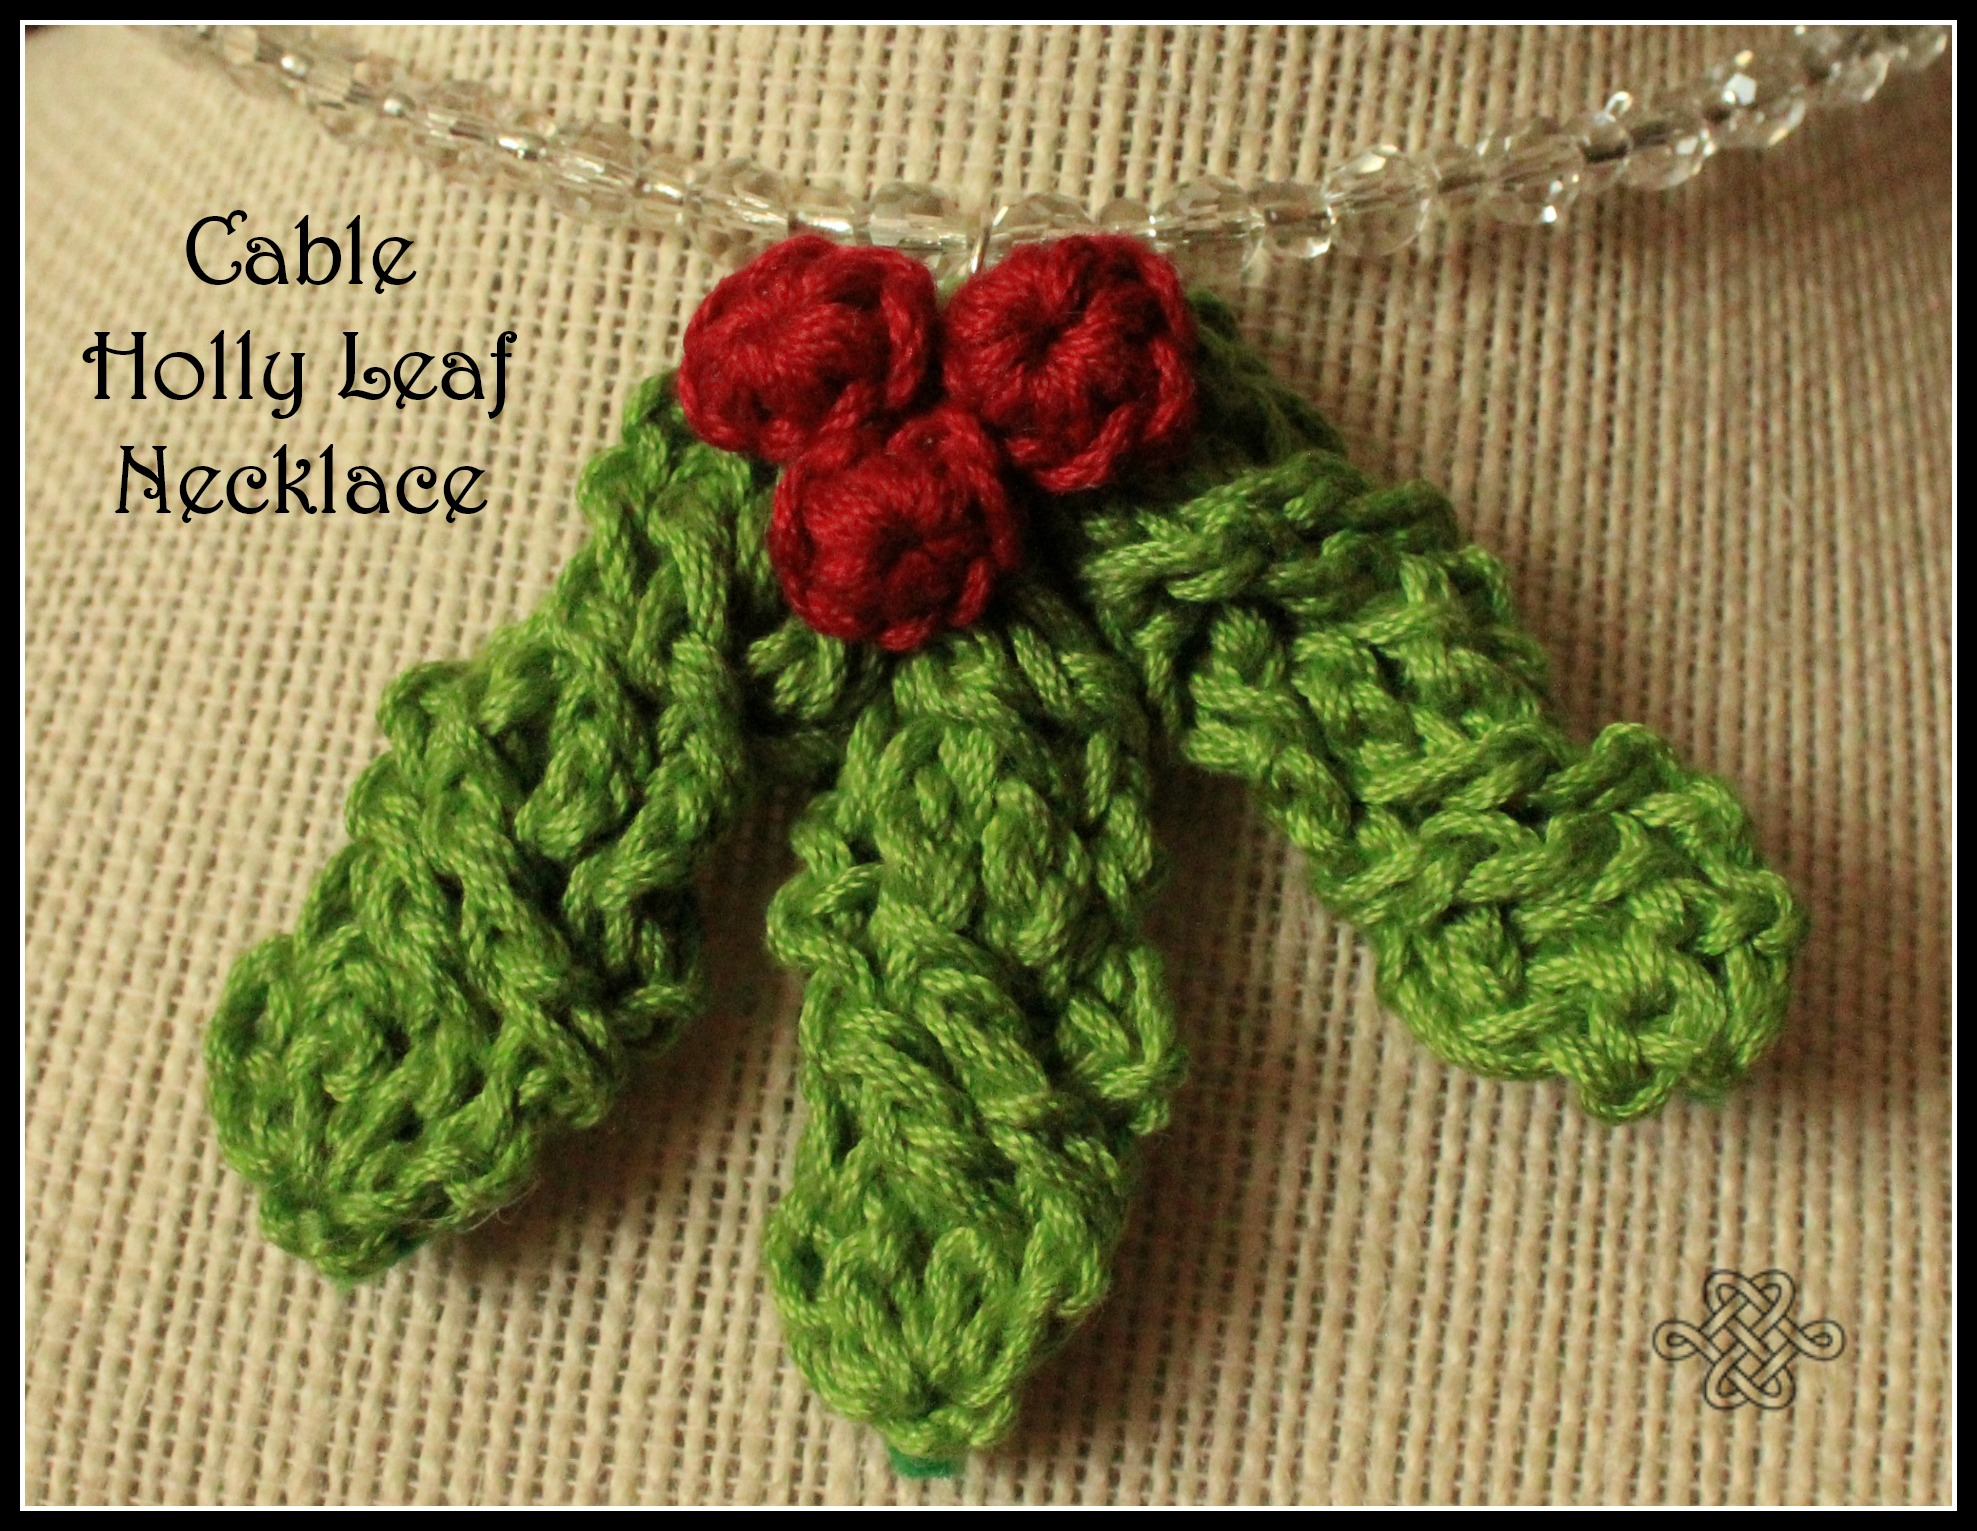 crocheted green holly leaves with red berries on a necklace